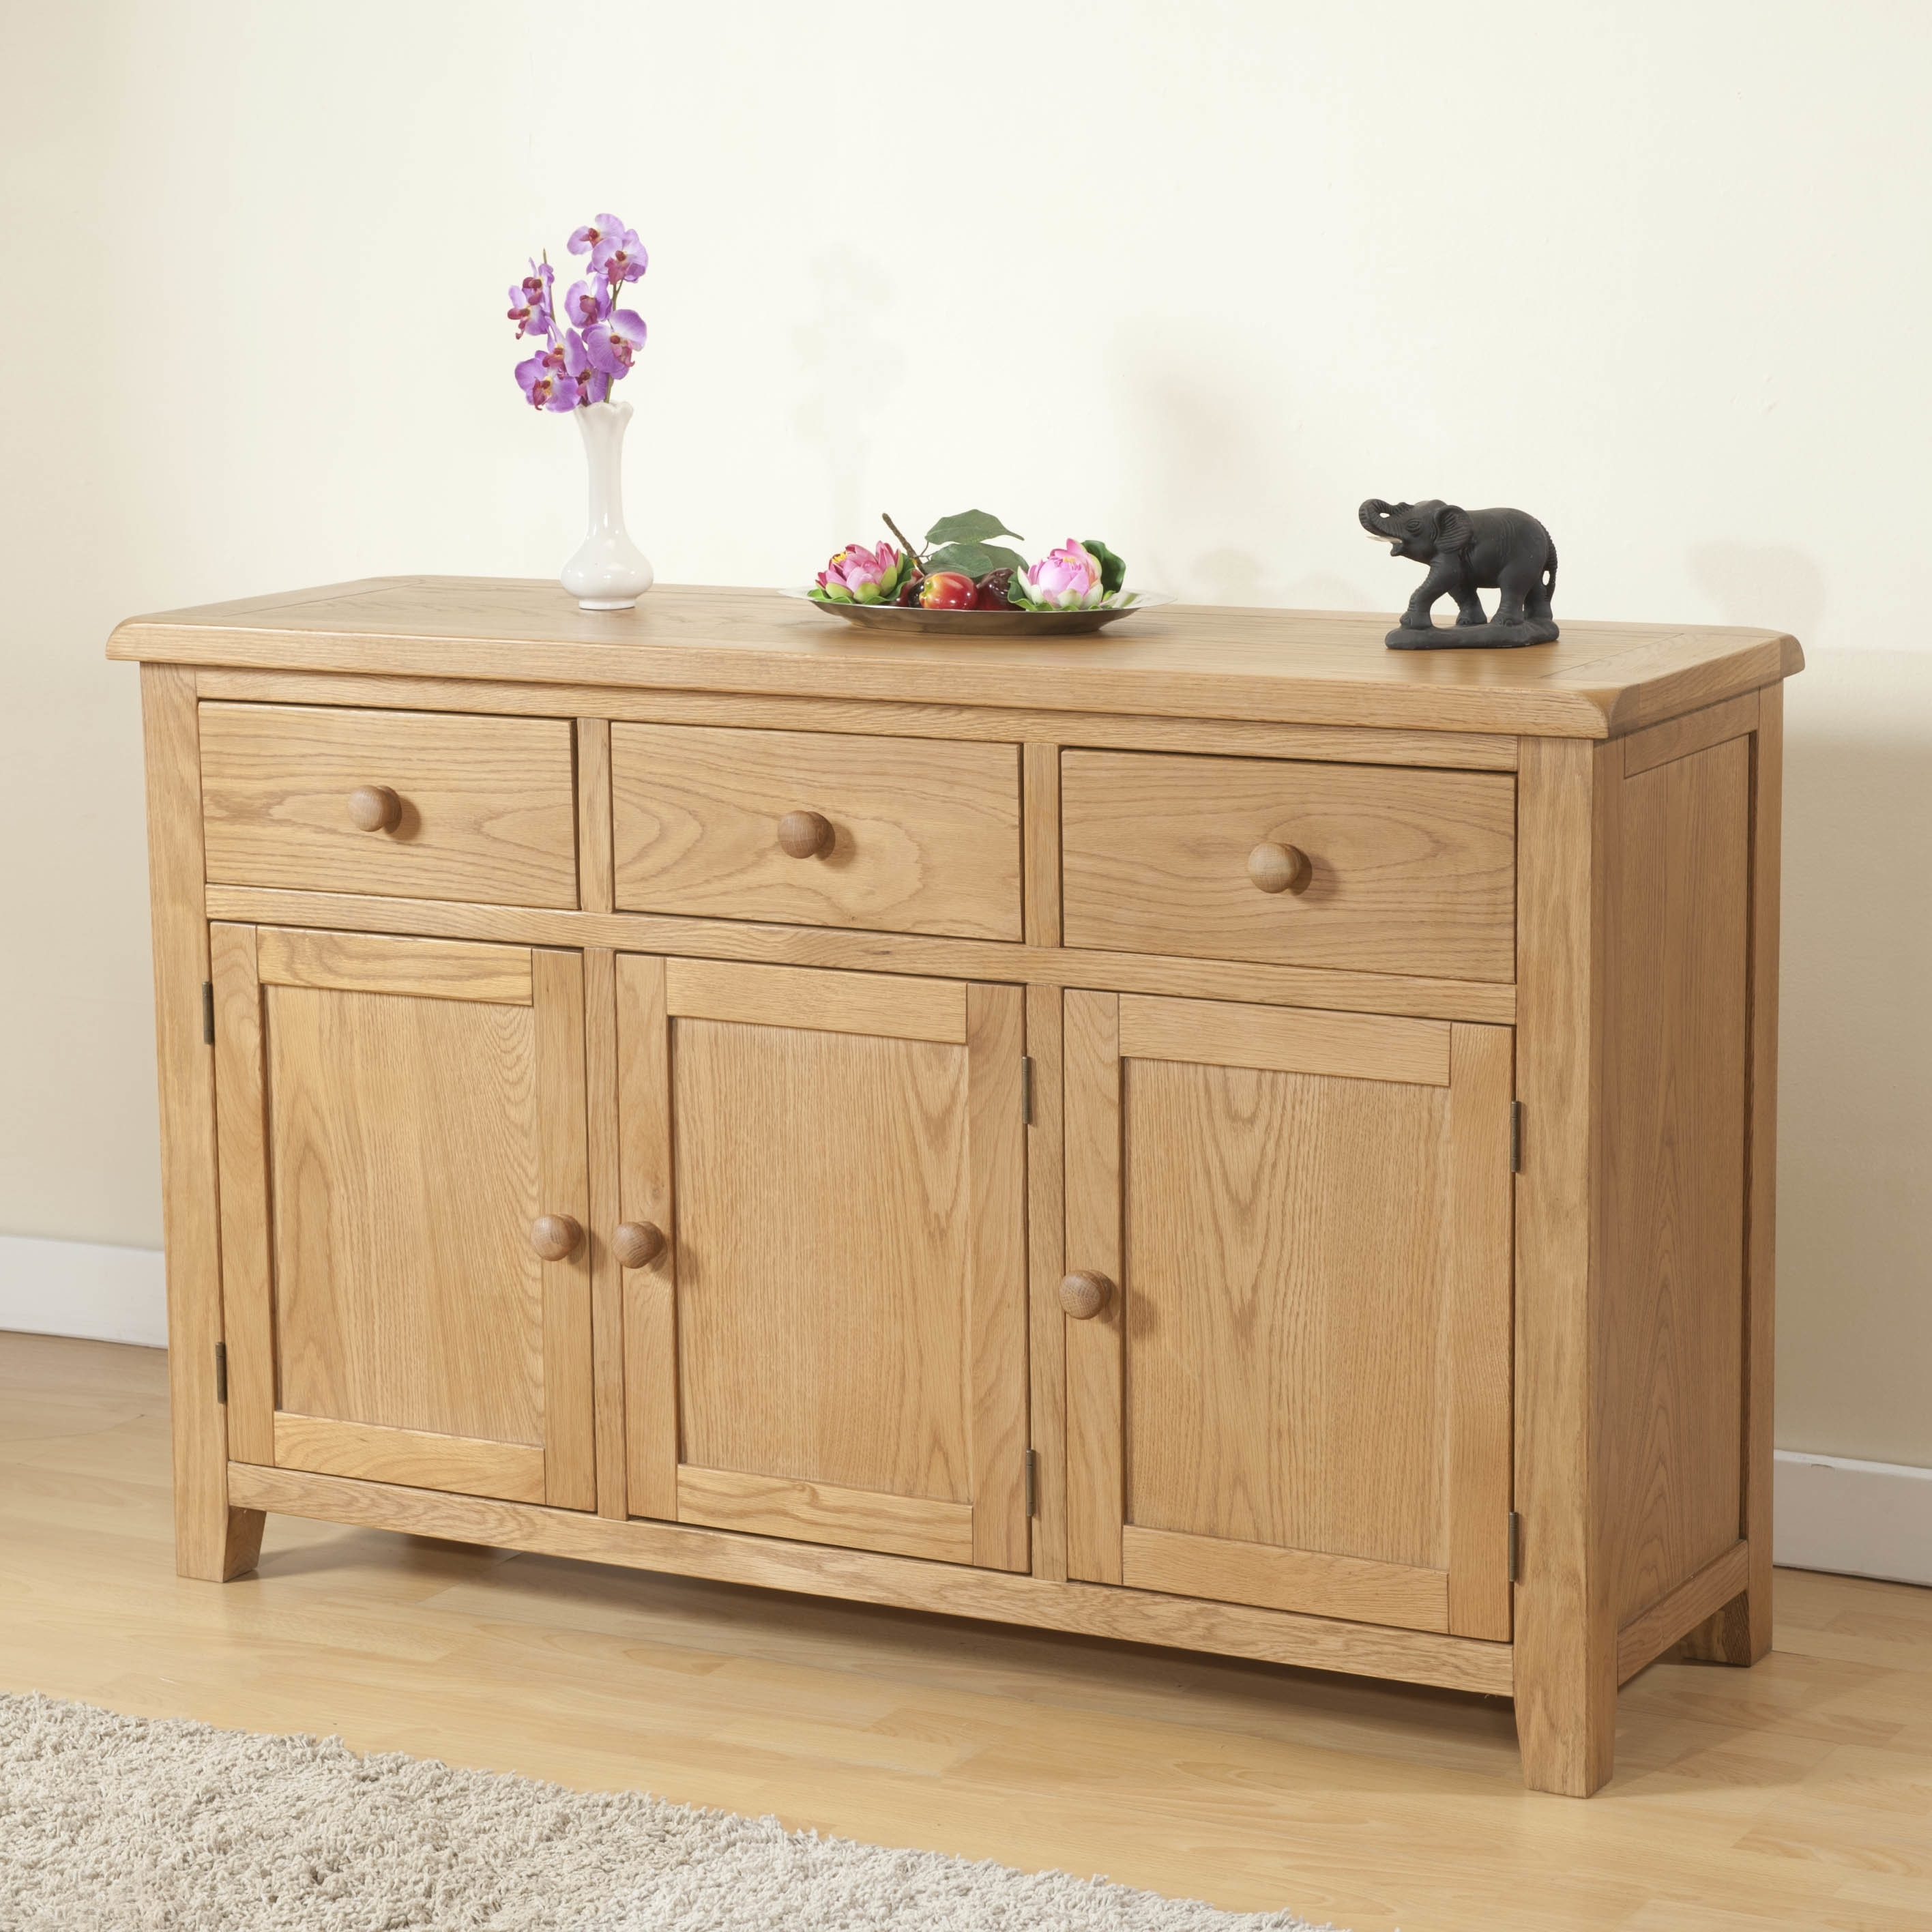 Hazelwood Home Rothbury 3 Door 3 Drawer Sideboard | Wayfair.co.uk pertaining to Aged Pine 3-Drawer 2-Door Sideboards (Image 13 of 30)